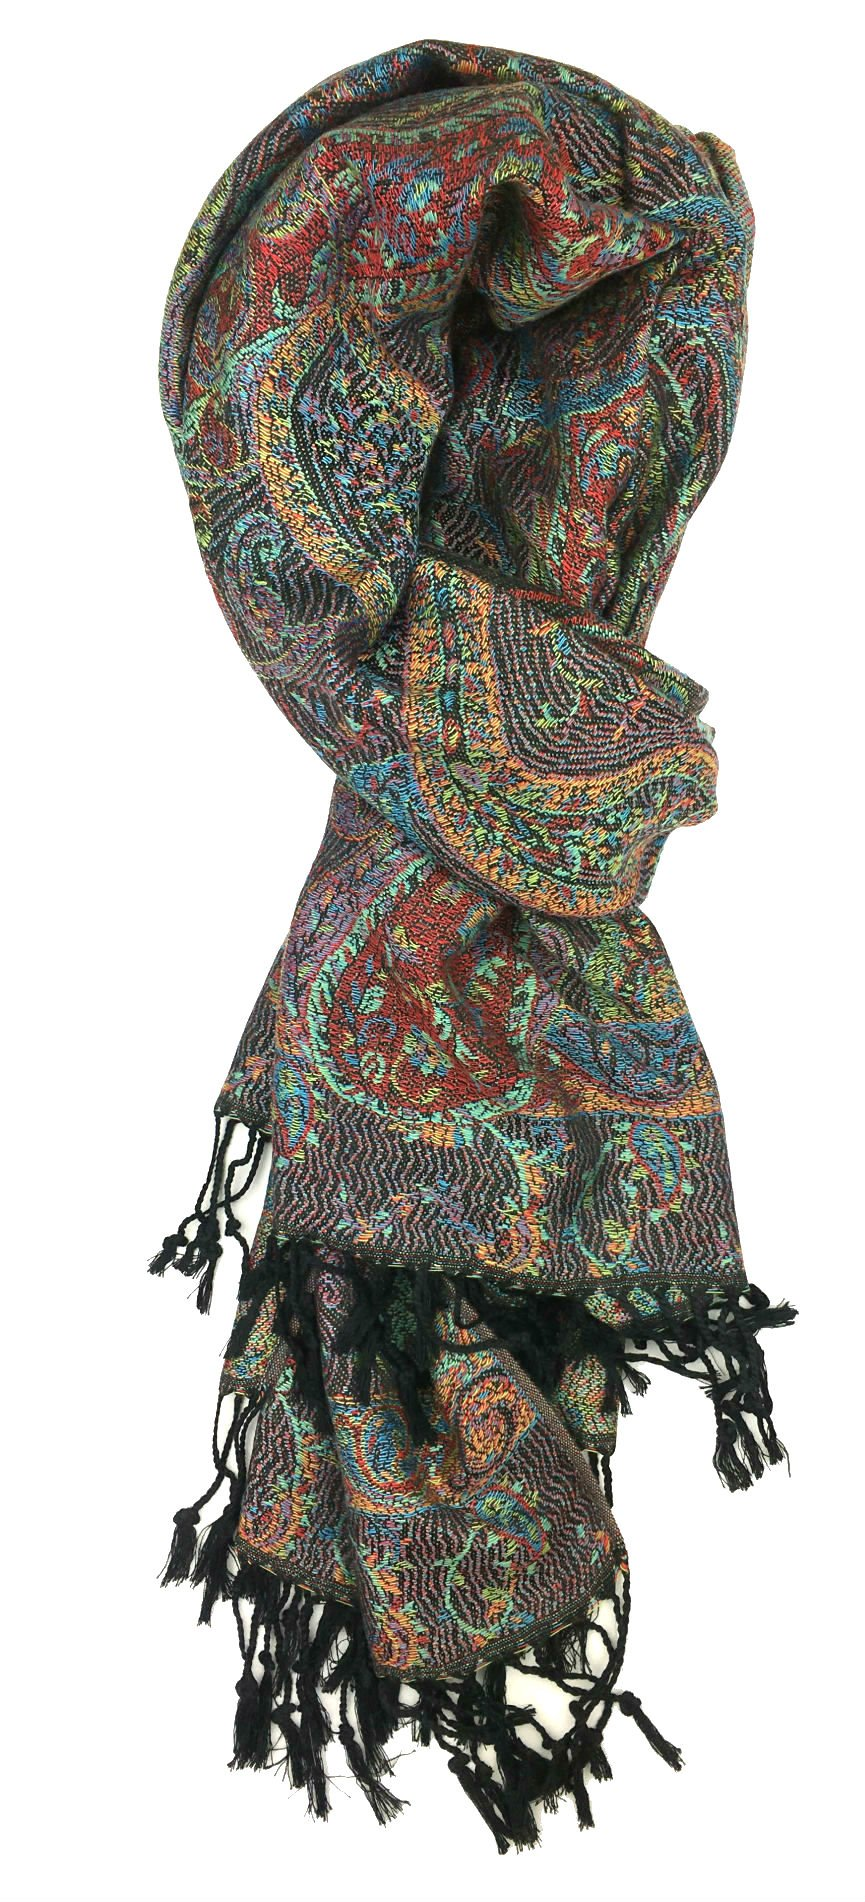 Plum Feathers Tapestry Ethnic Paisley Pattern Pashmina Scarf (Black Multi Tapestry) by Plum Feathers